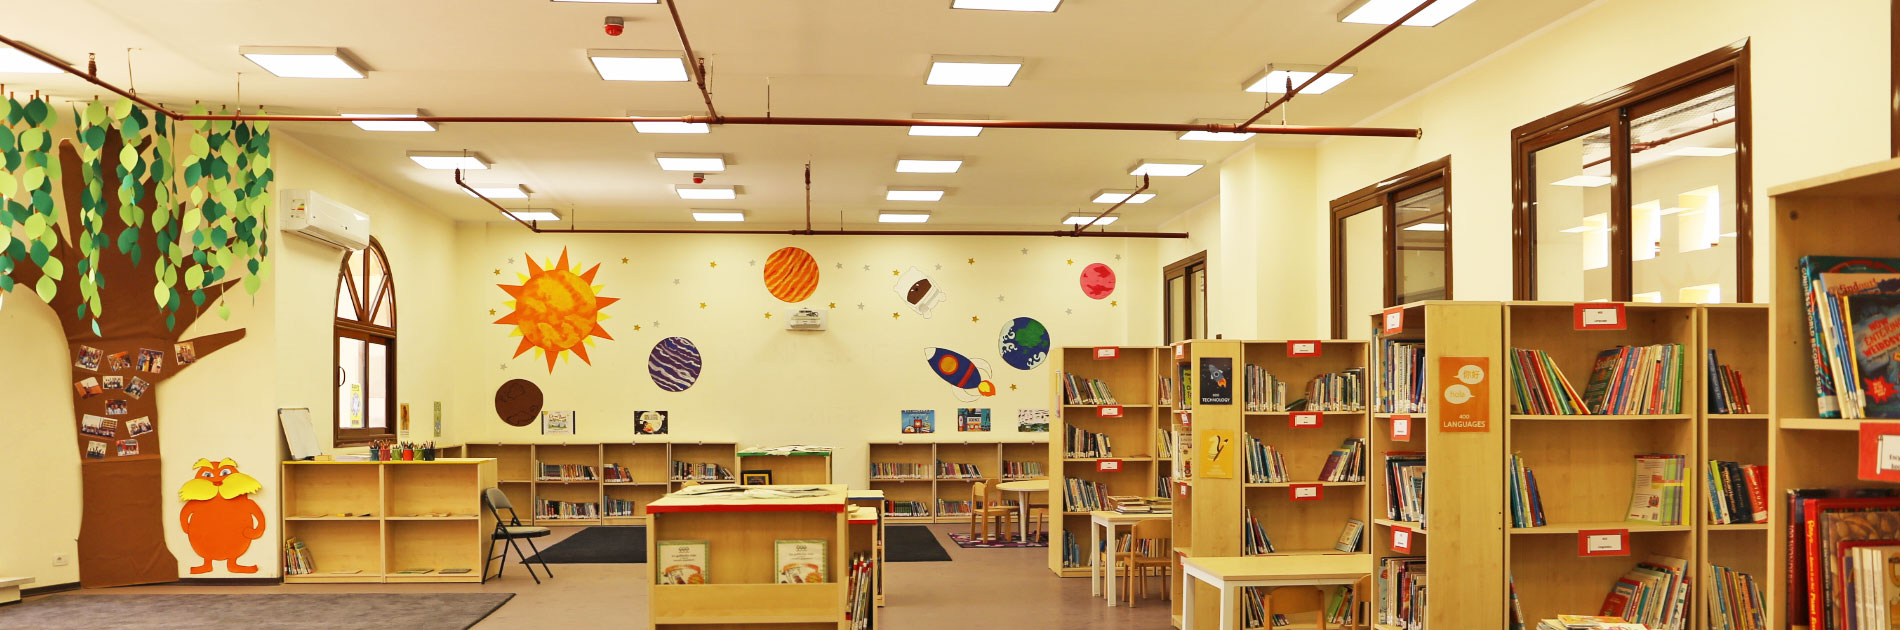 Gateway is one of the top International Schools in New Cairo in Egypt and the first Montessori International School in Egypt